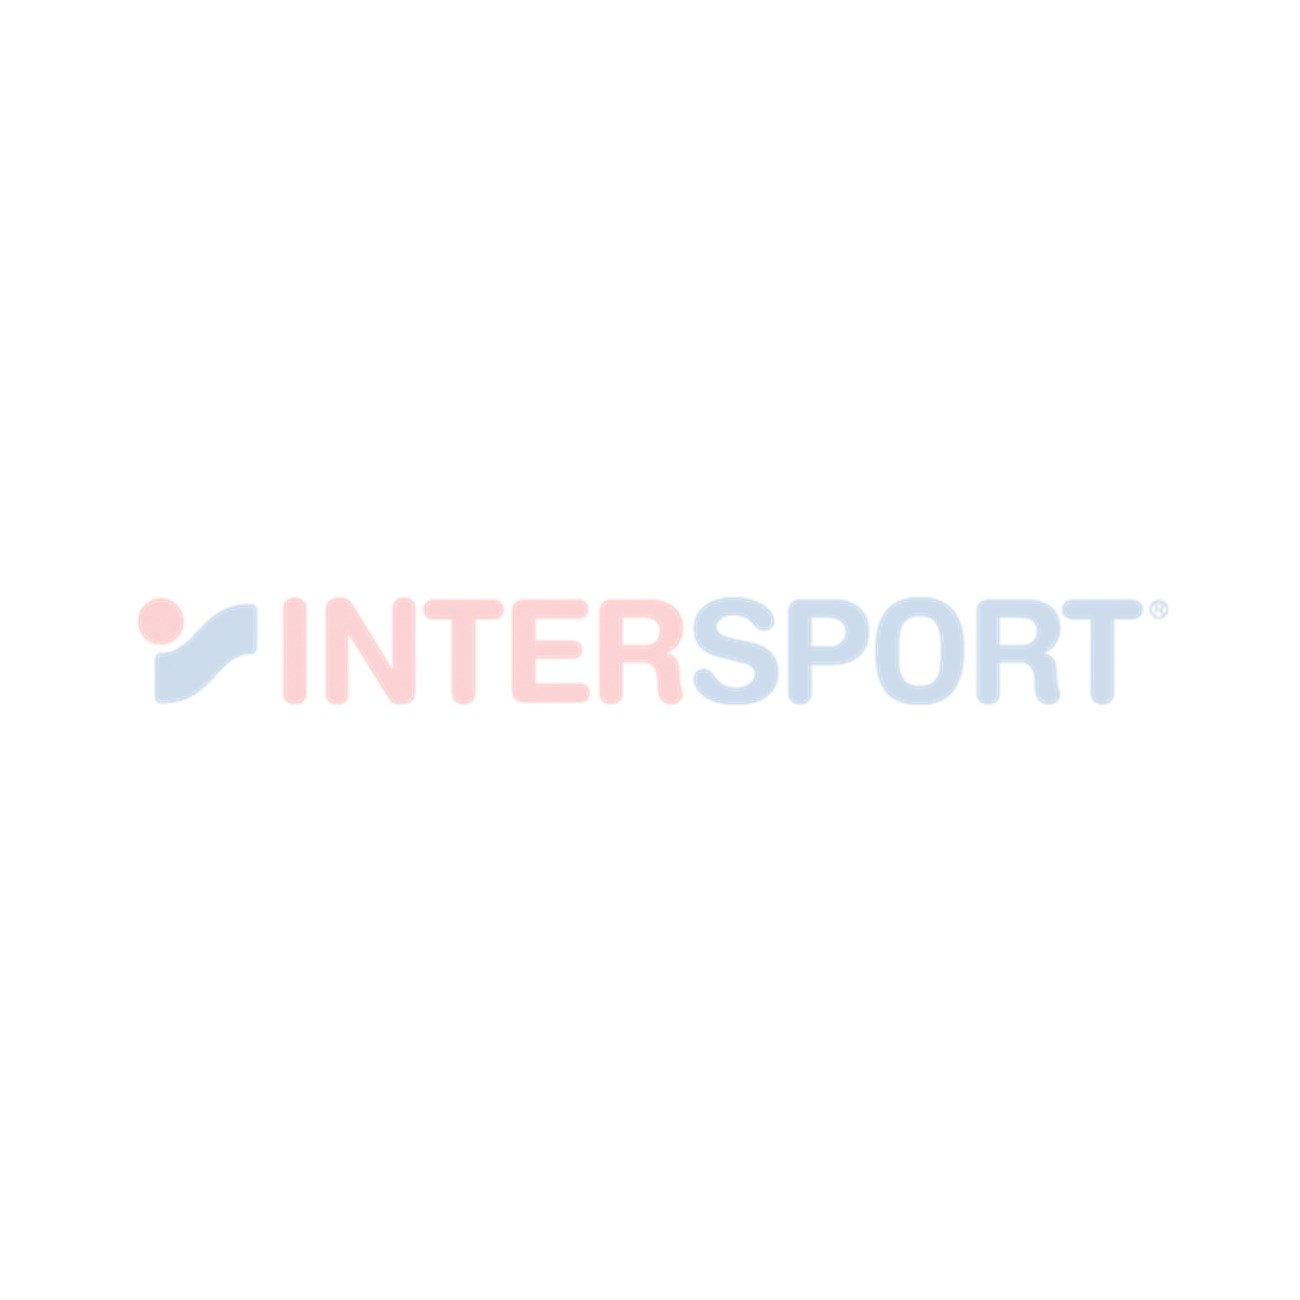 GARMIN Ρολόι / μετρητής Vivomove HR Sport S/M 13010519-0290 - INTERSPORT